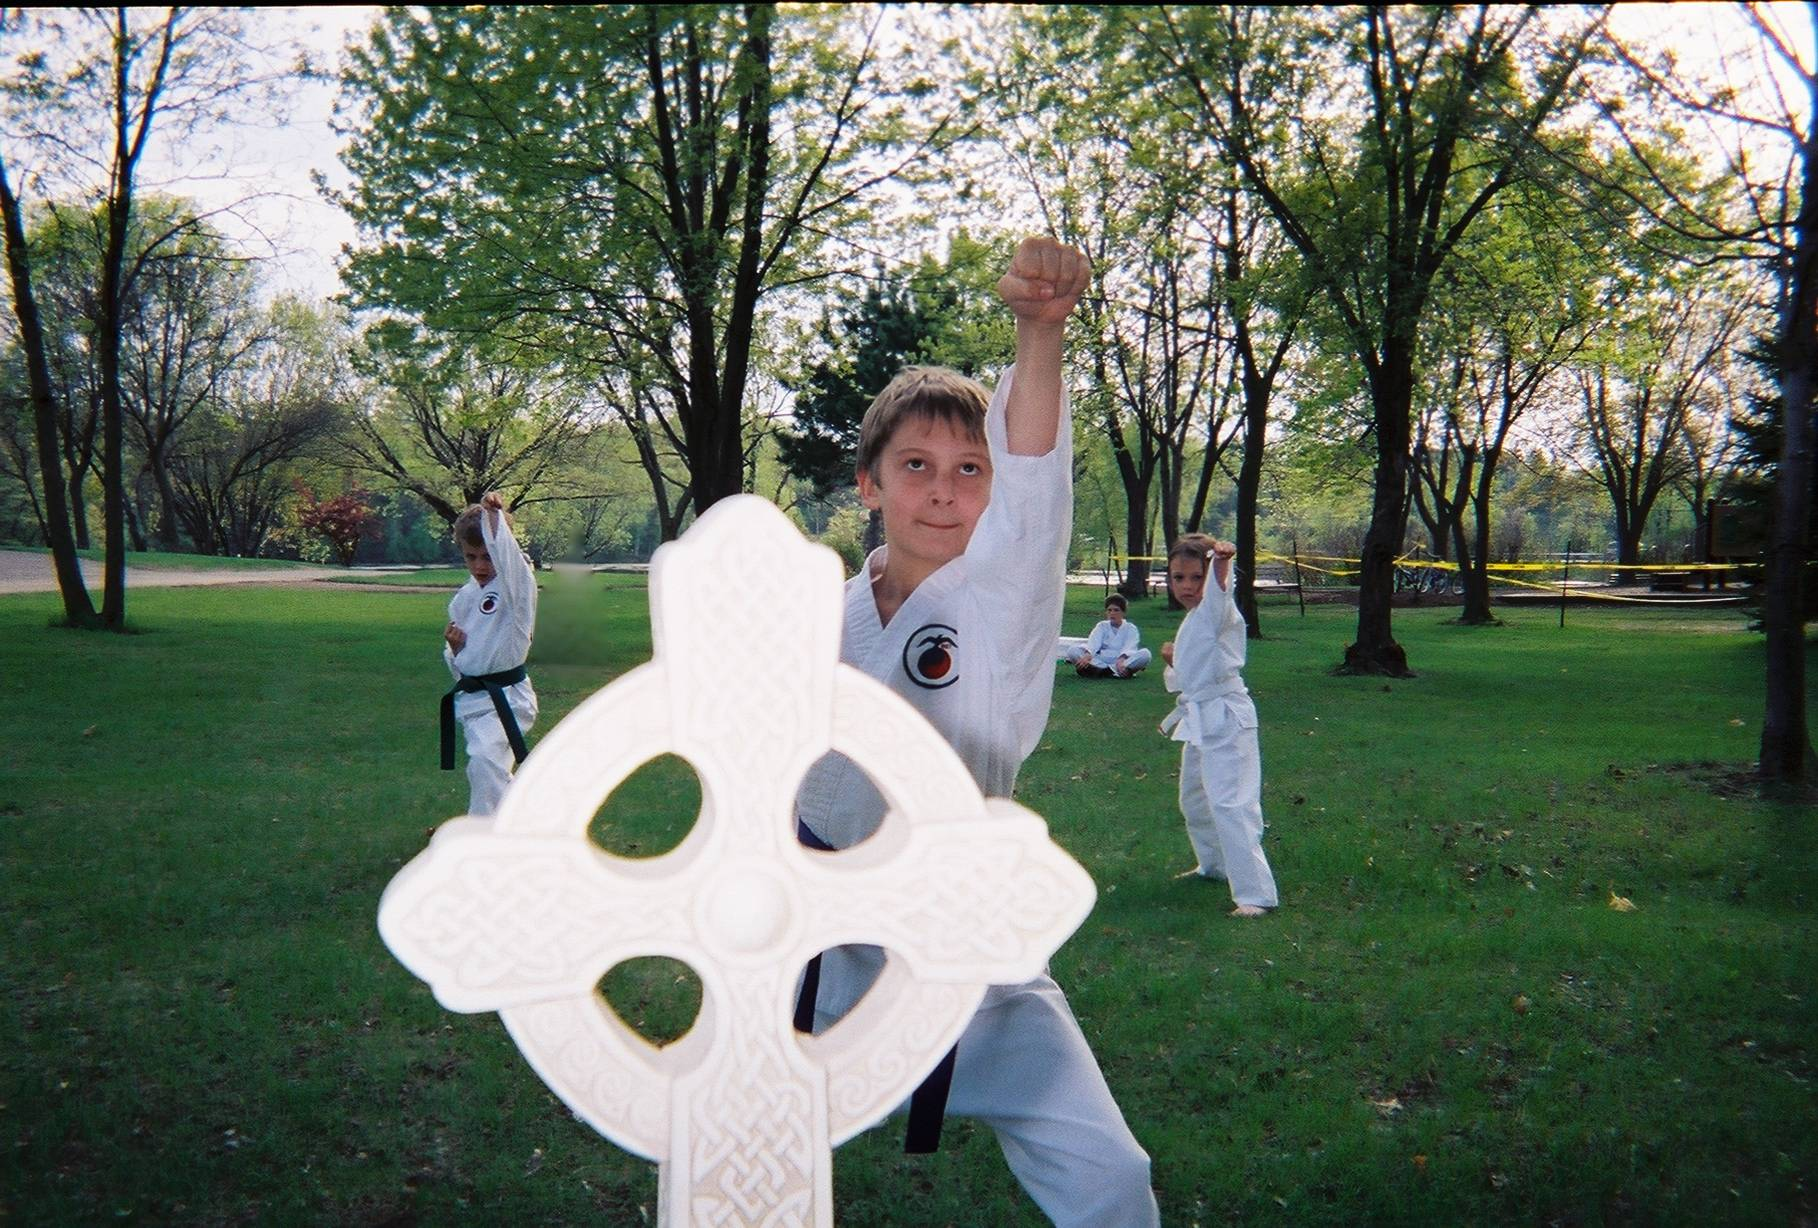 BE!-coming Christ-centered martial artists!